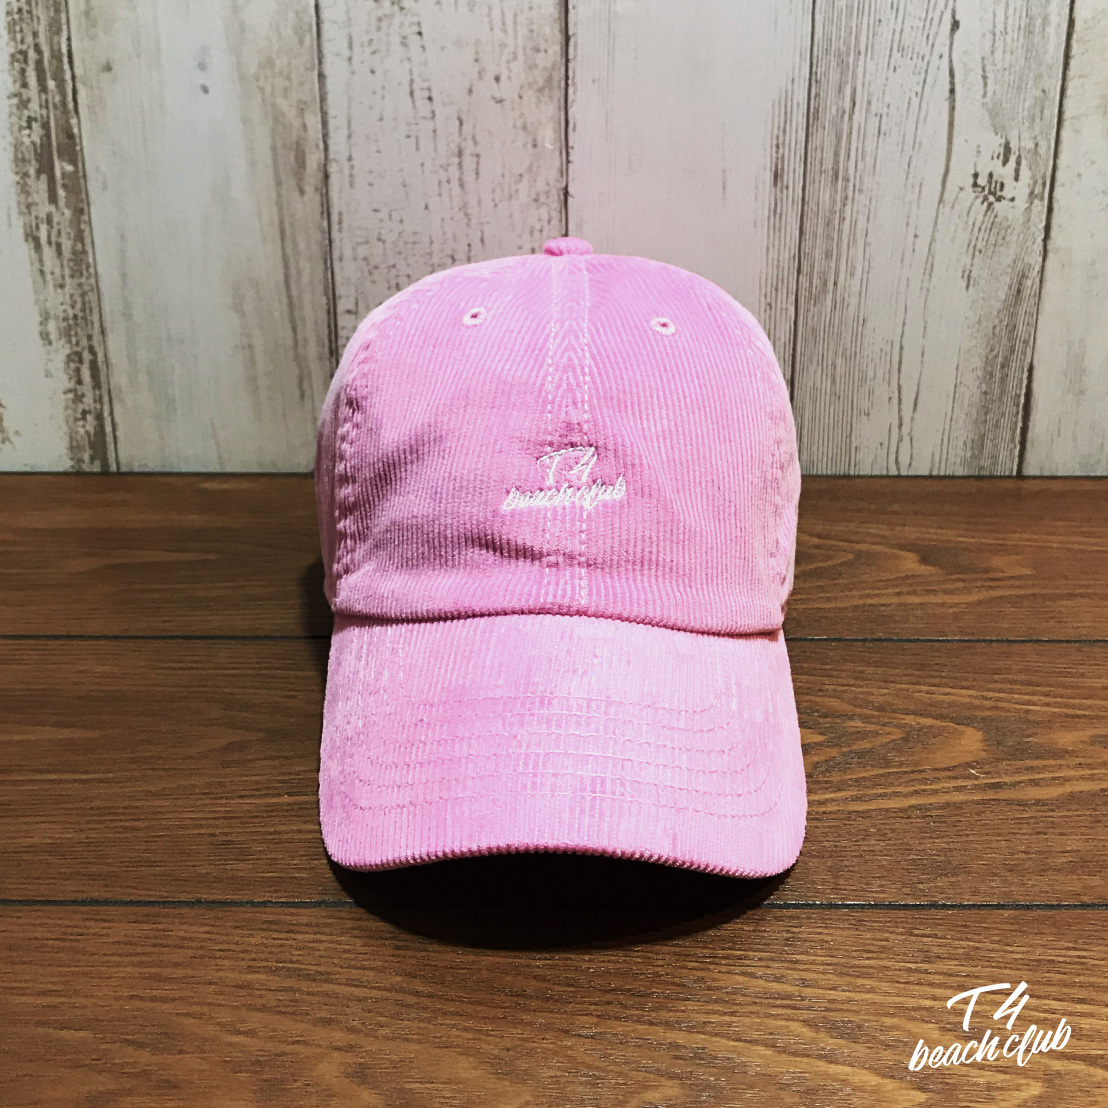 【TF007】 T4beachclub 6PANEL CORDUROY CAP